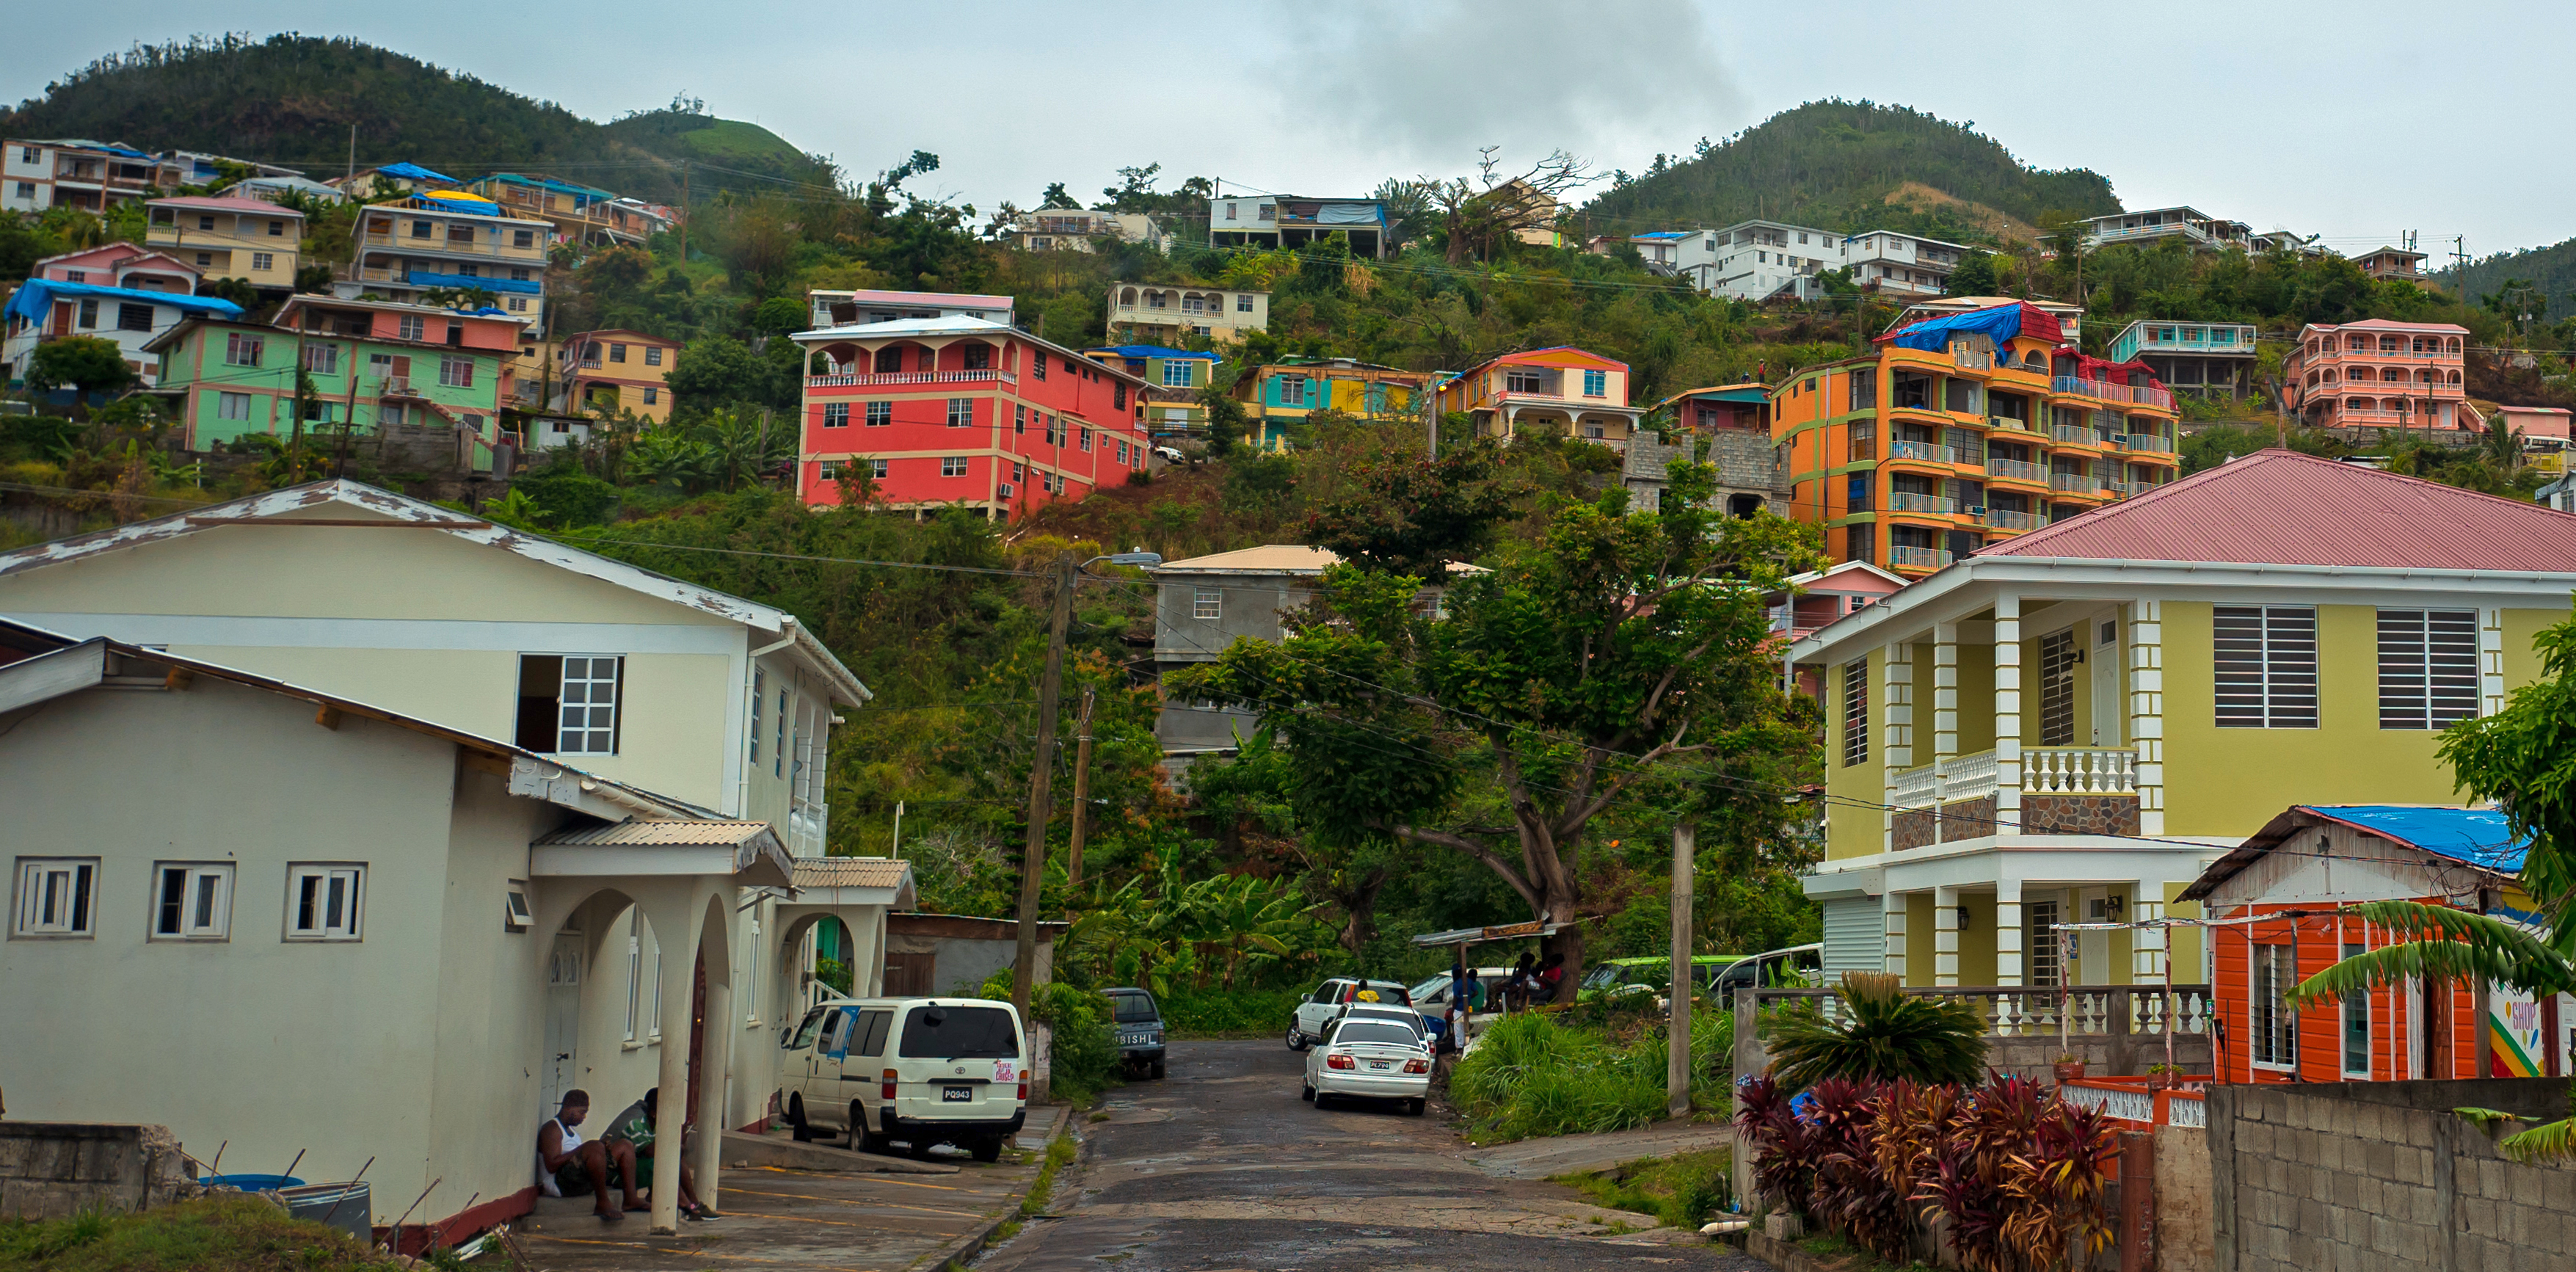 Homes on the hillside above Canefield.